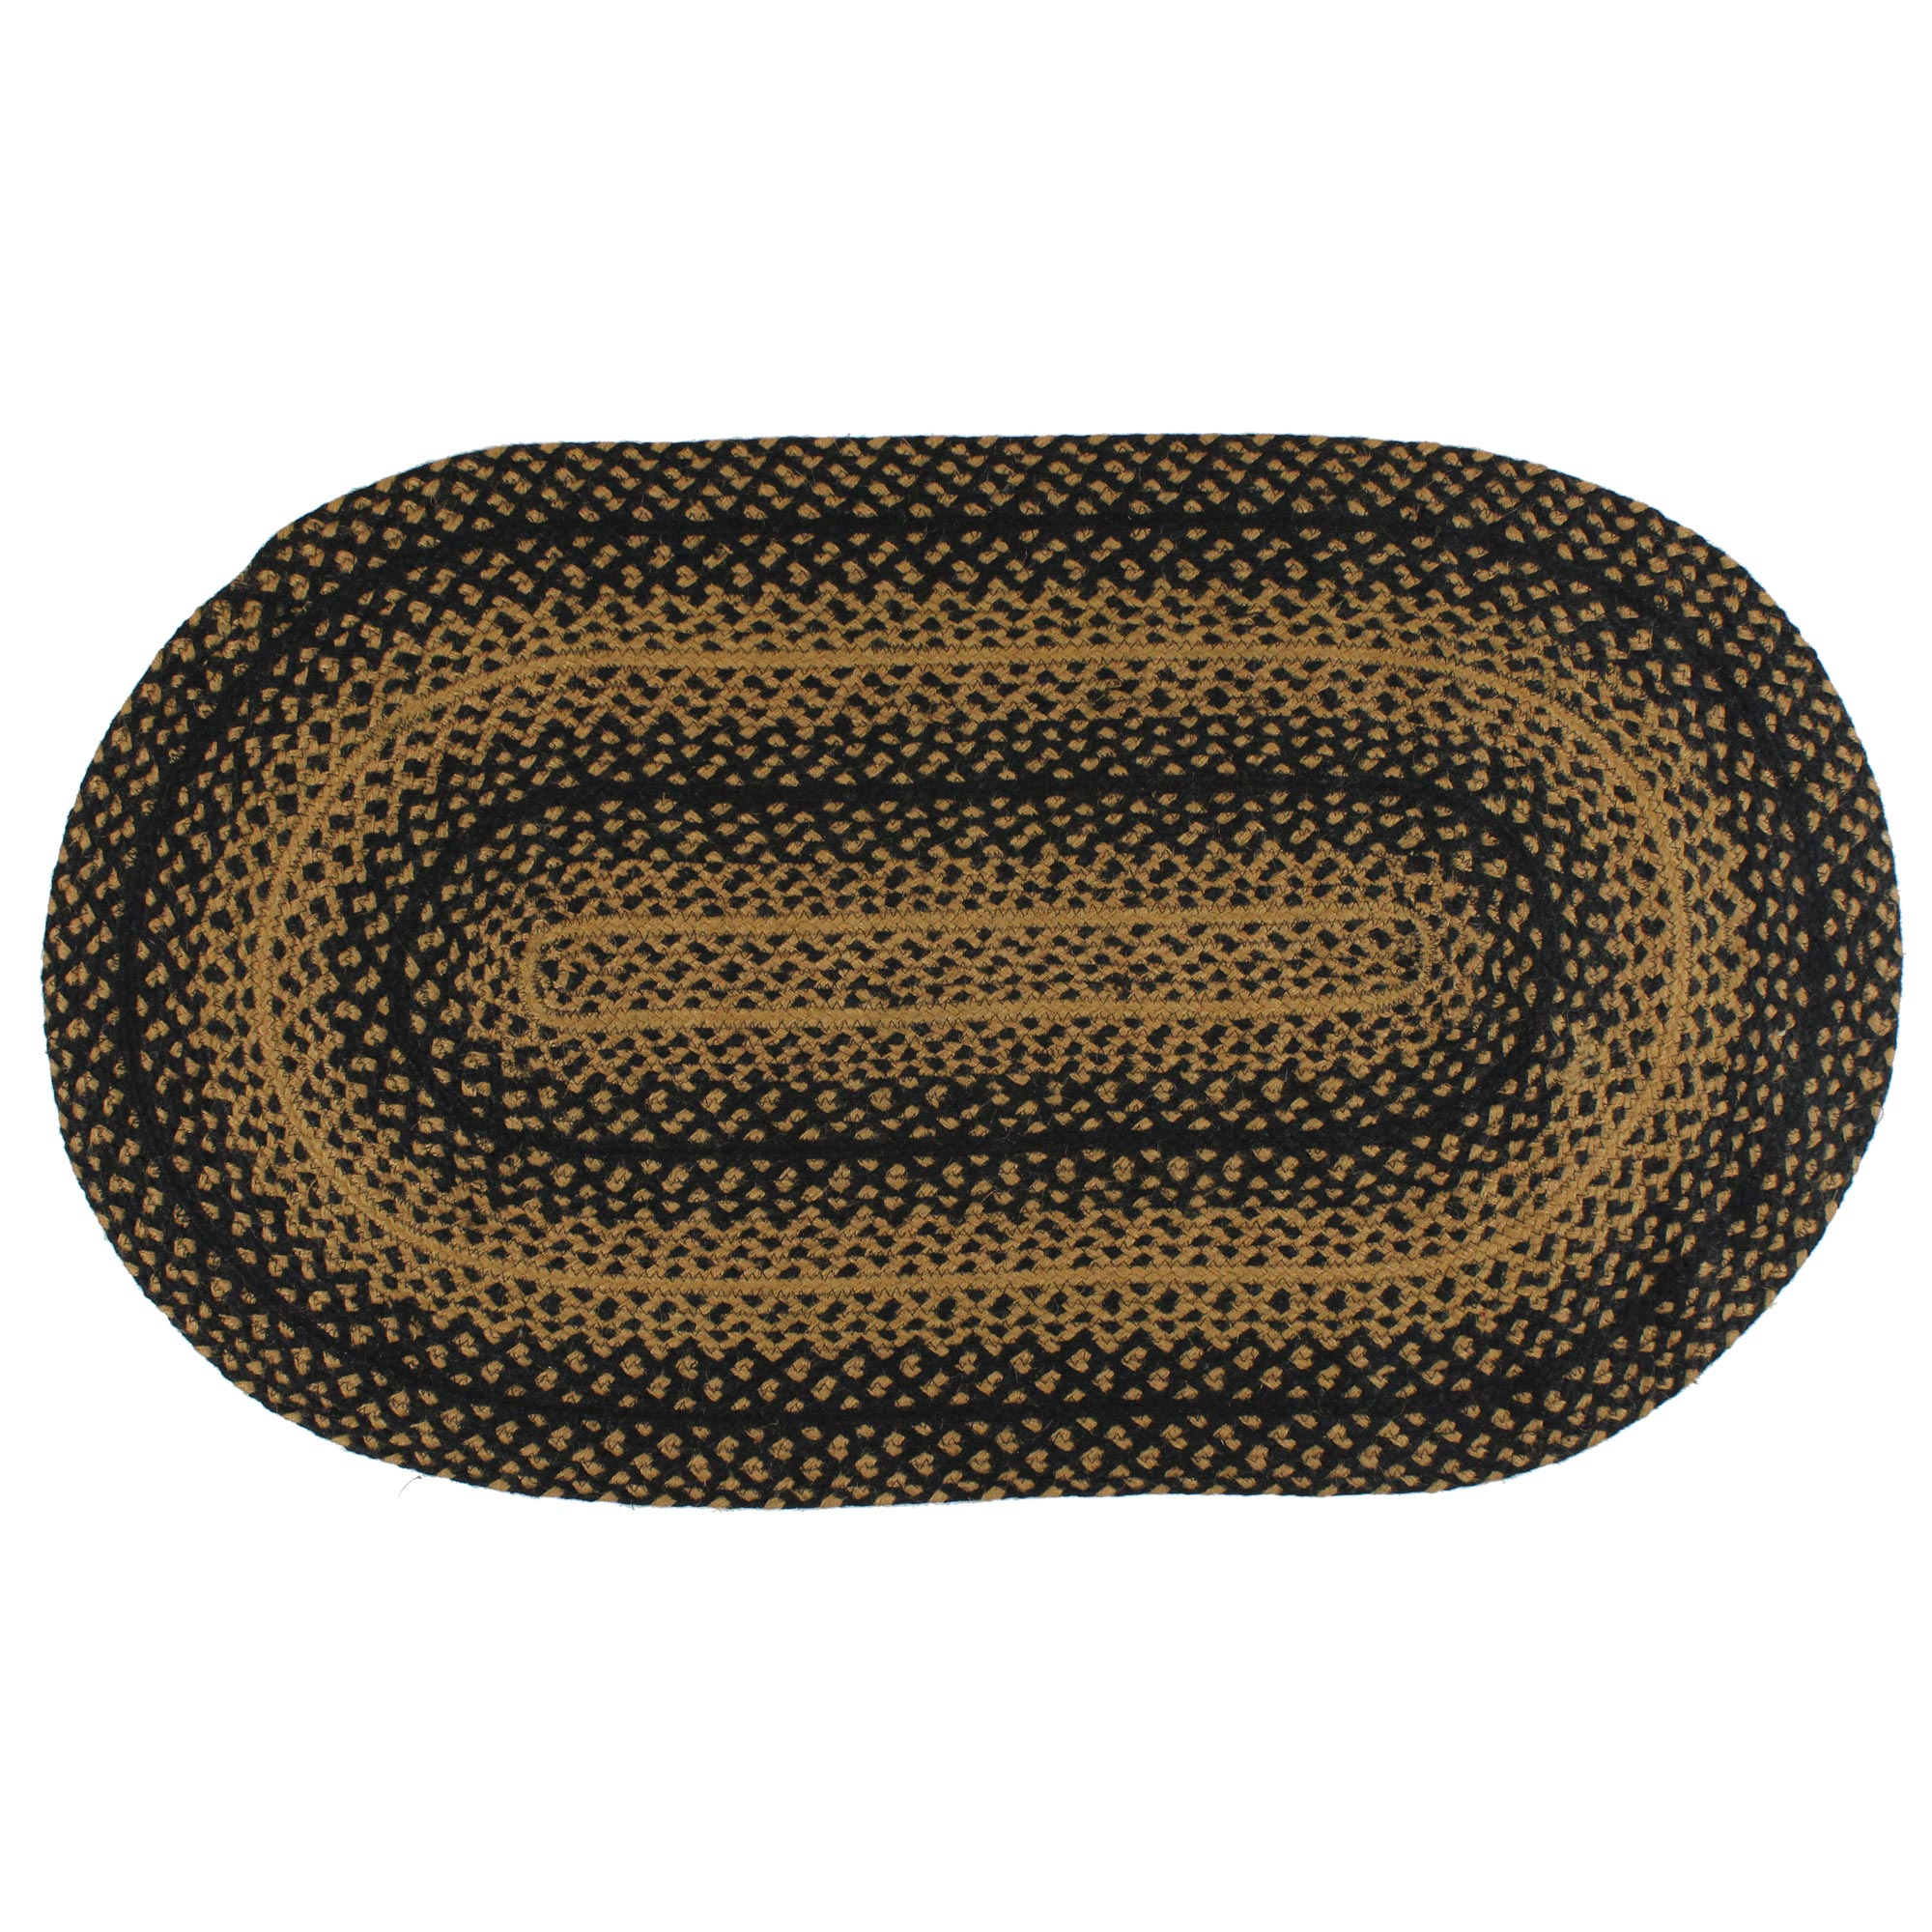 ebony black and tan jute braided area rug ebay. Black Bedroom Furniture Sets. Home Design Ideas